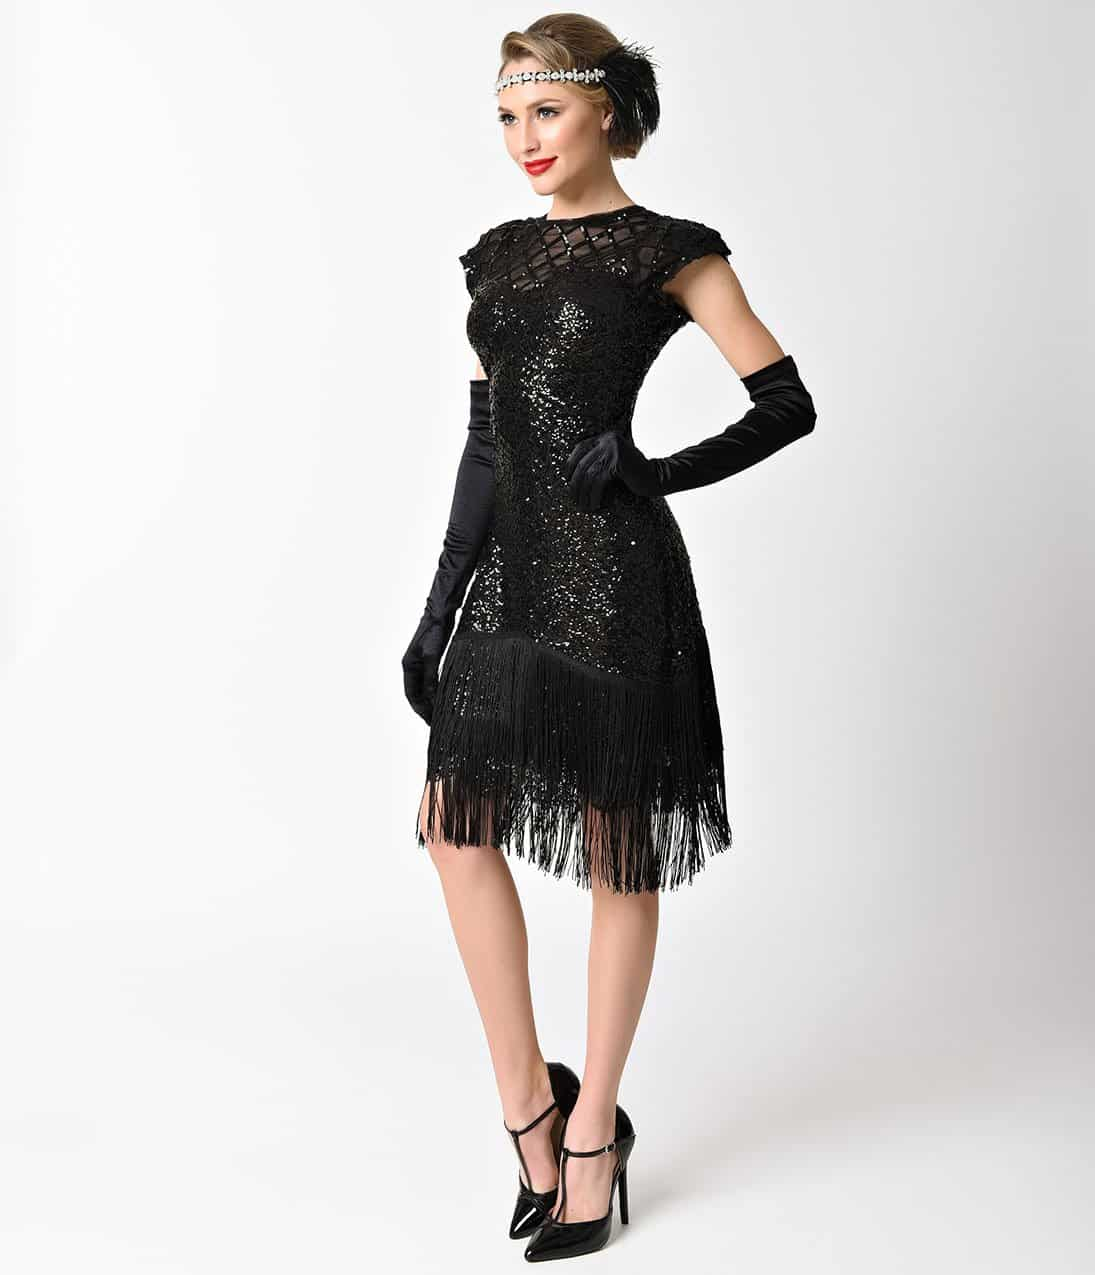 Model 1920u0026#39;s Great Gatsby Themed Party | Youu0026#39;re Never Too Old To Dress Up | Pinterest